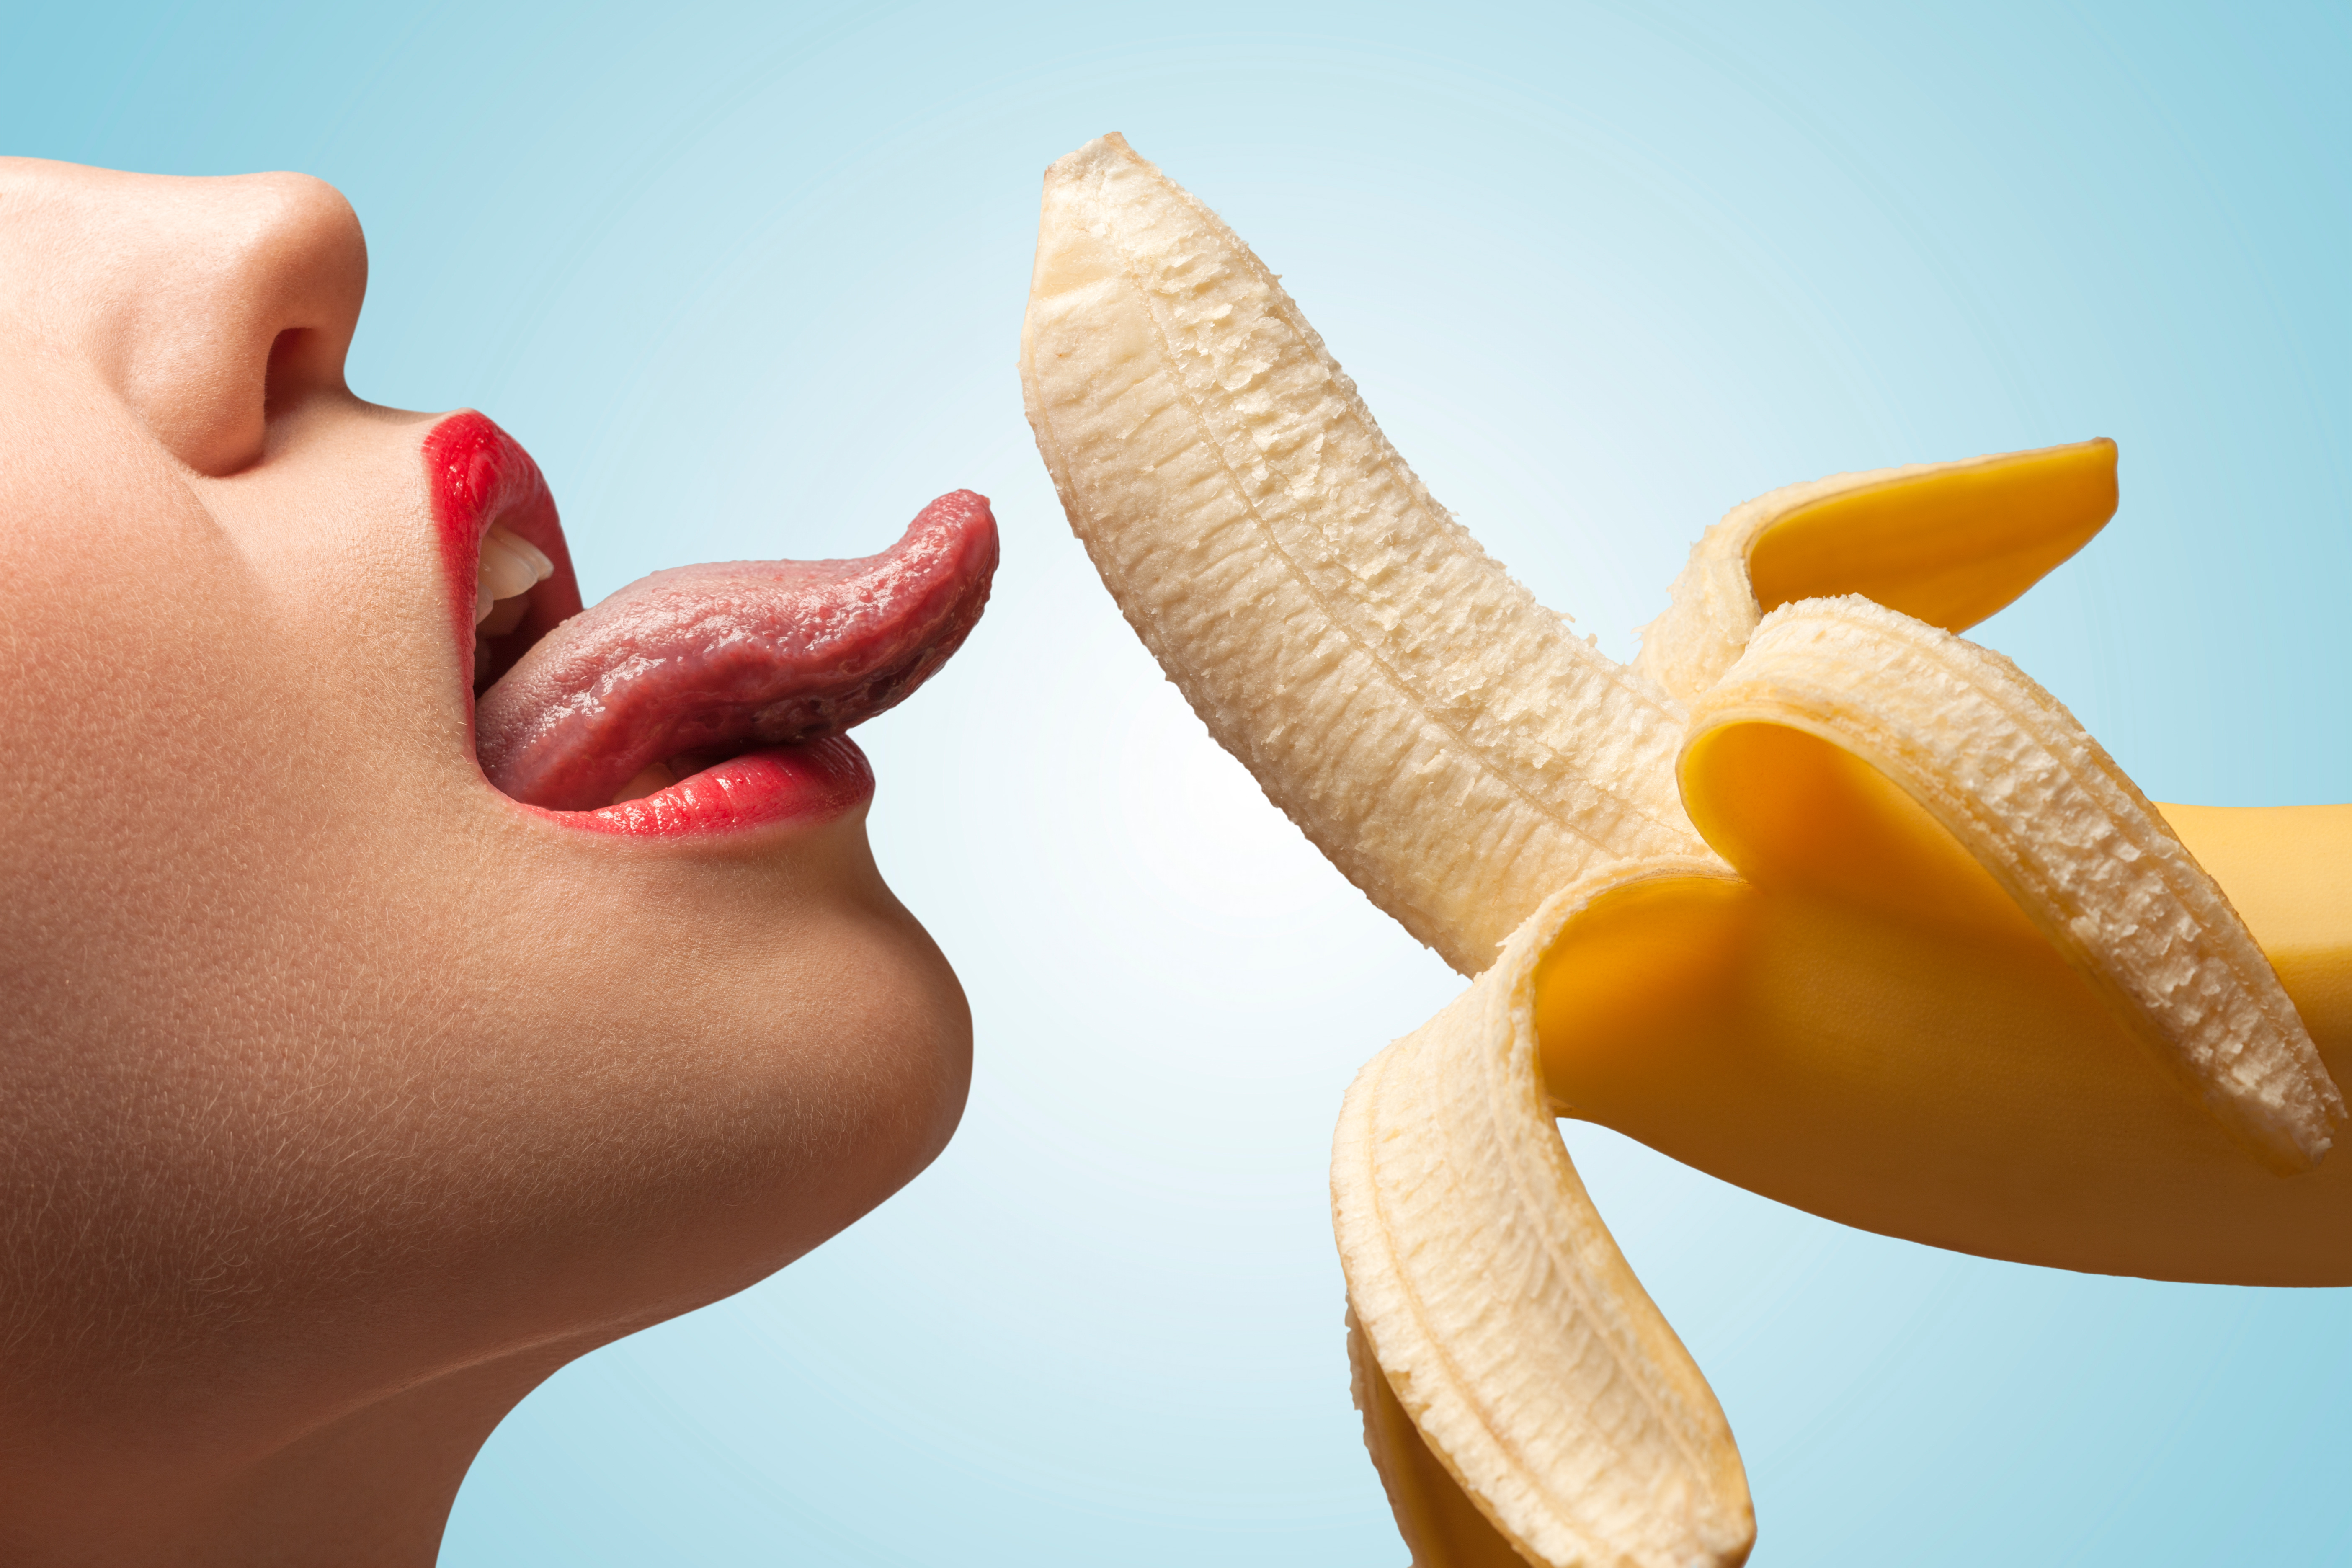 download photo 1366x768 model sexy banana tongue licking